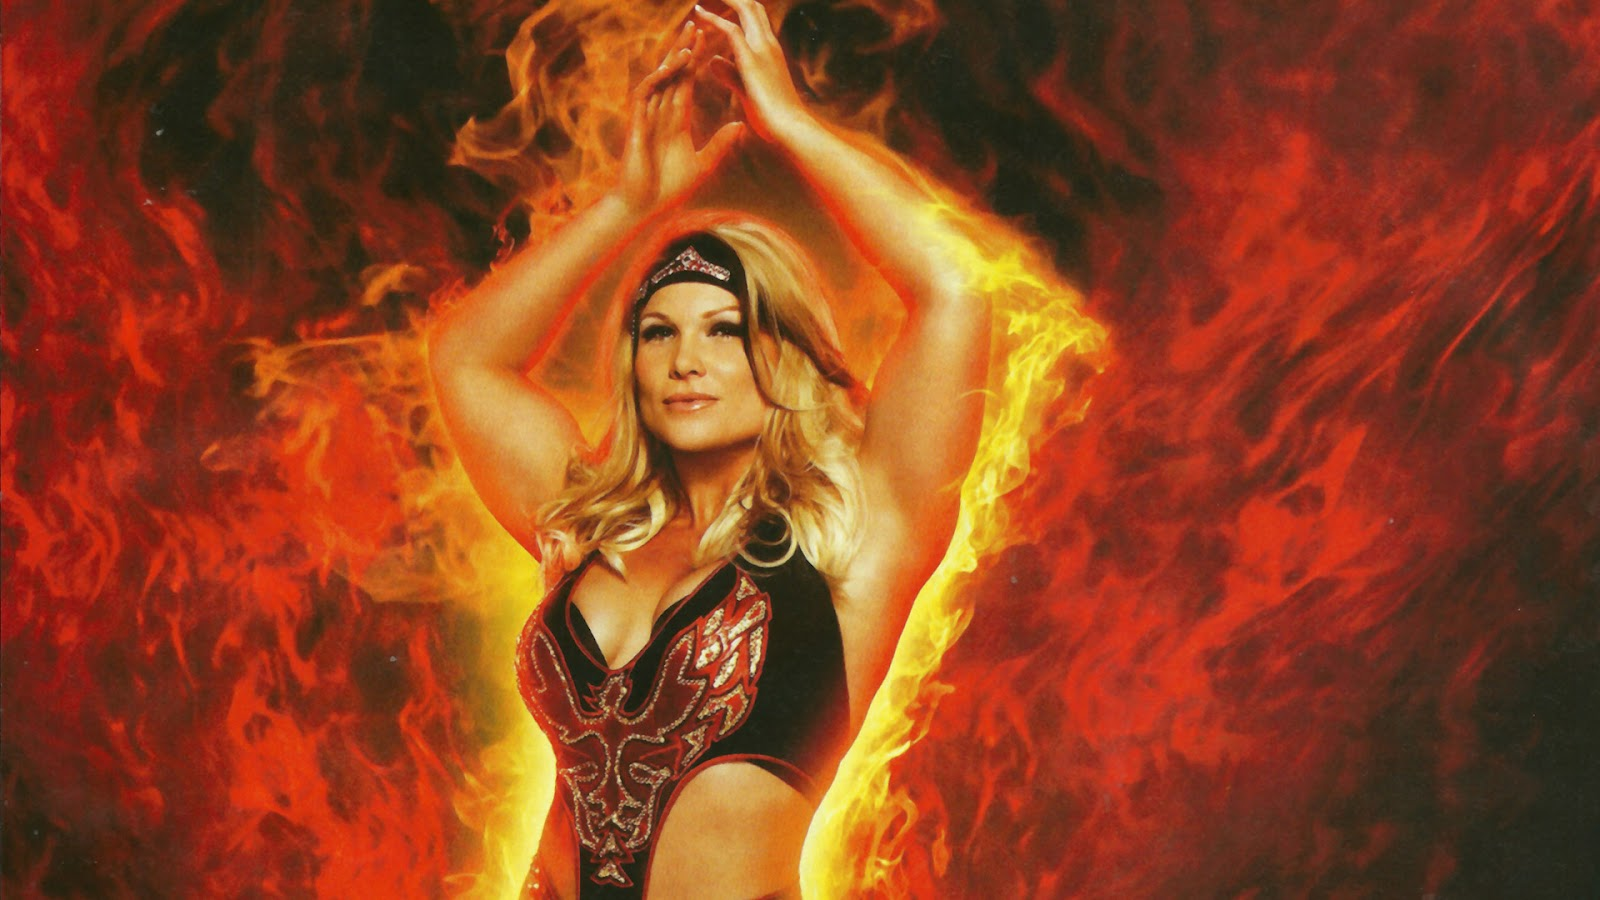 Hd wallpapers wwe super hot divas full hd wallpapers of - Wwe divas wallpapers ...